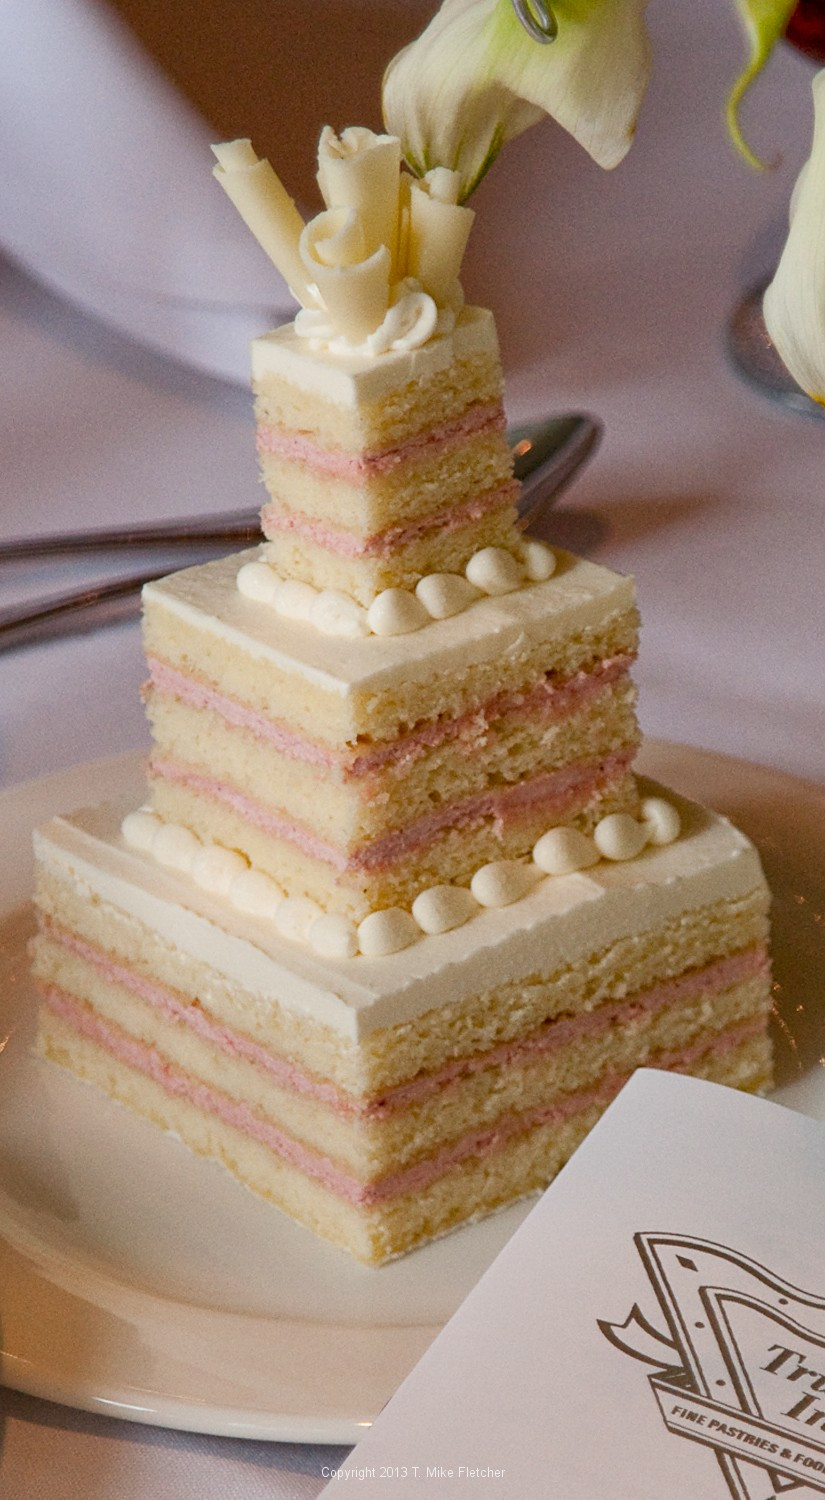 Miniature Wedding Cakes  miniature wedding cake Archives Pastries Like a Pro